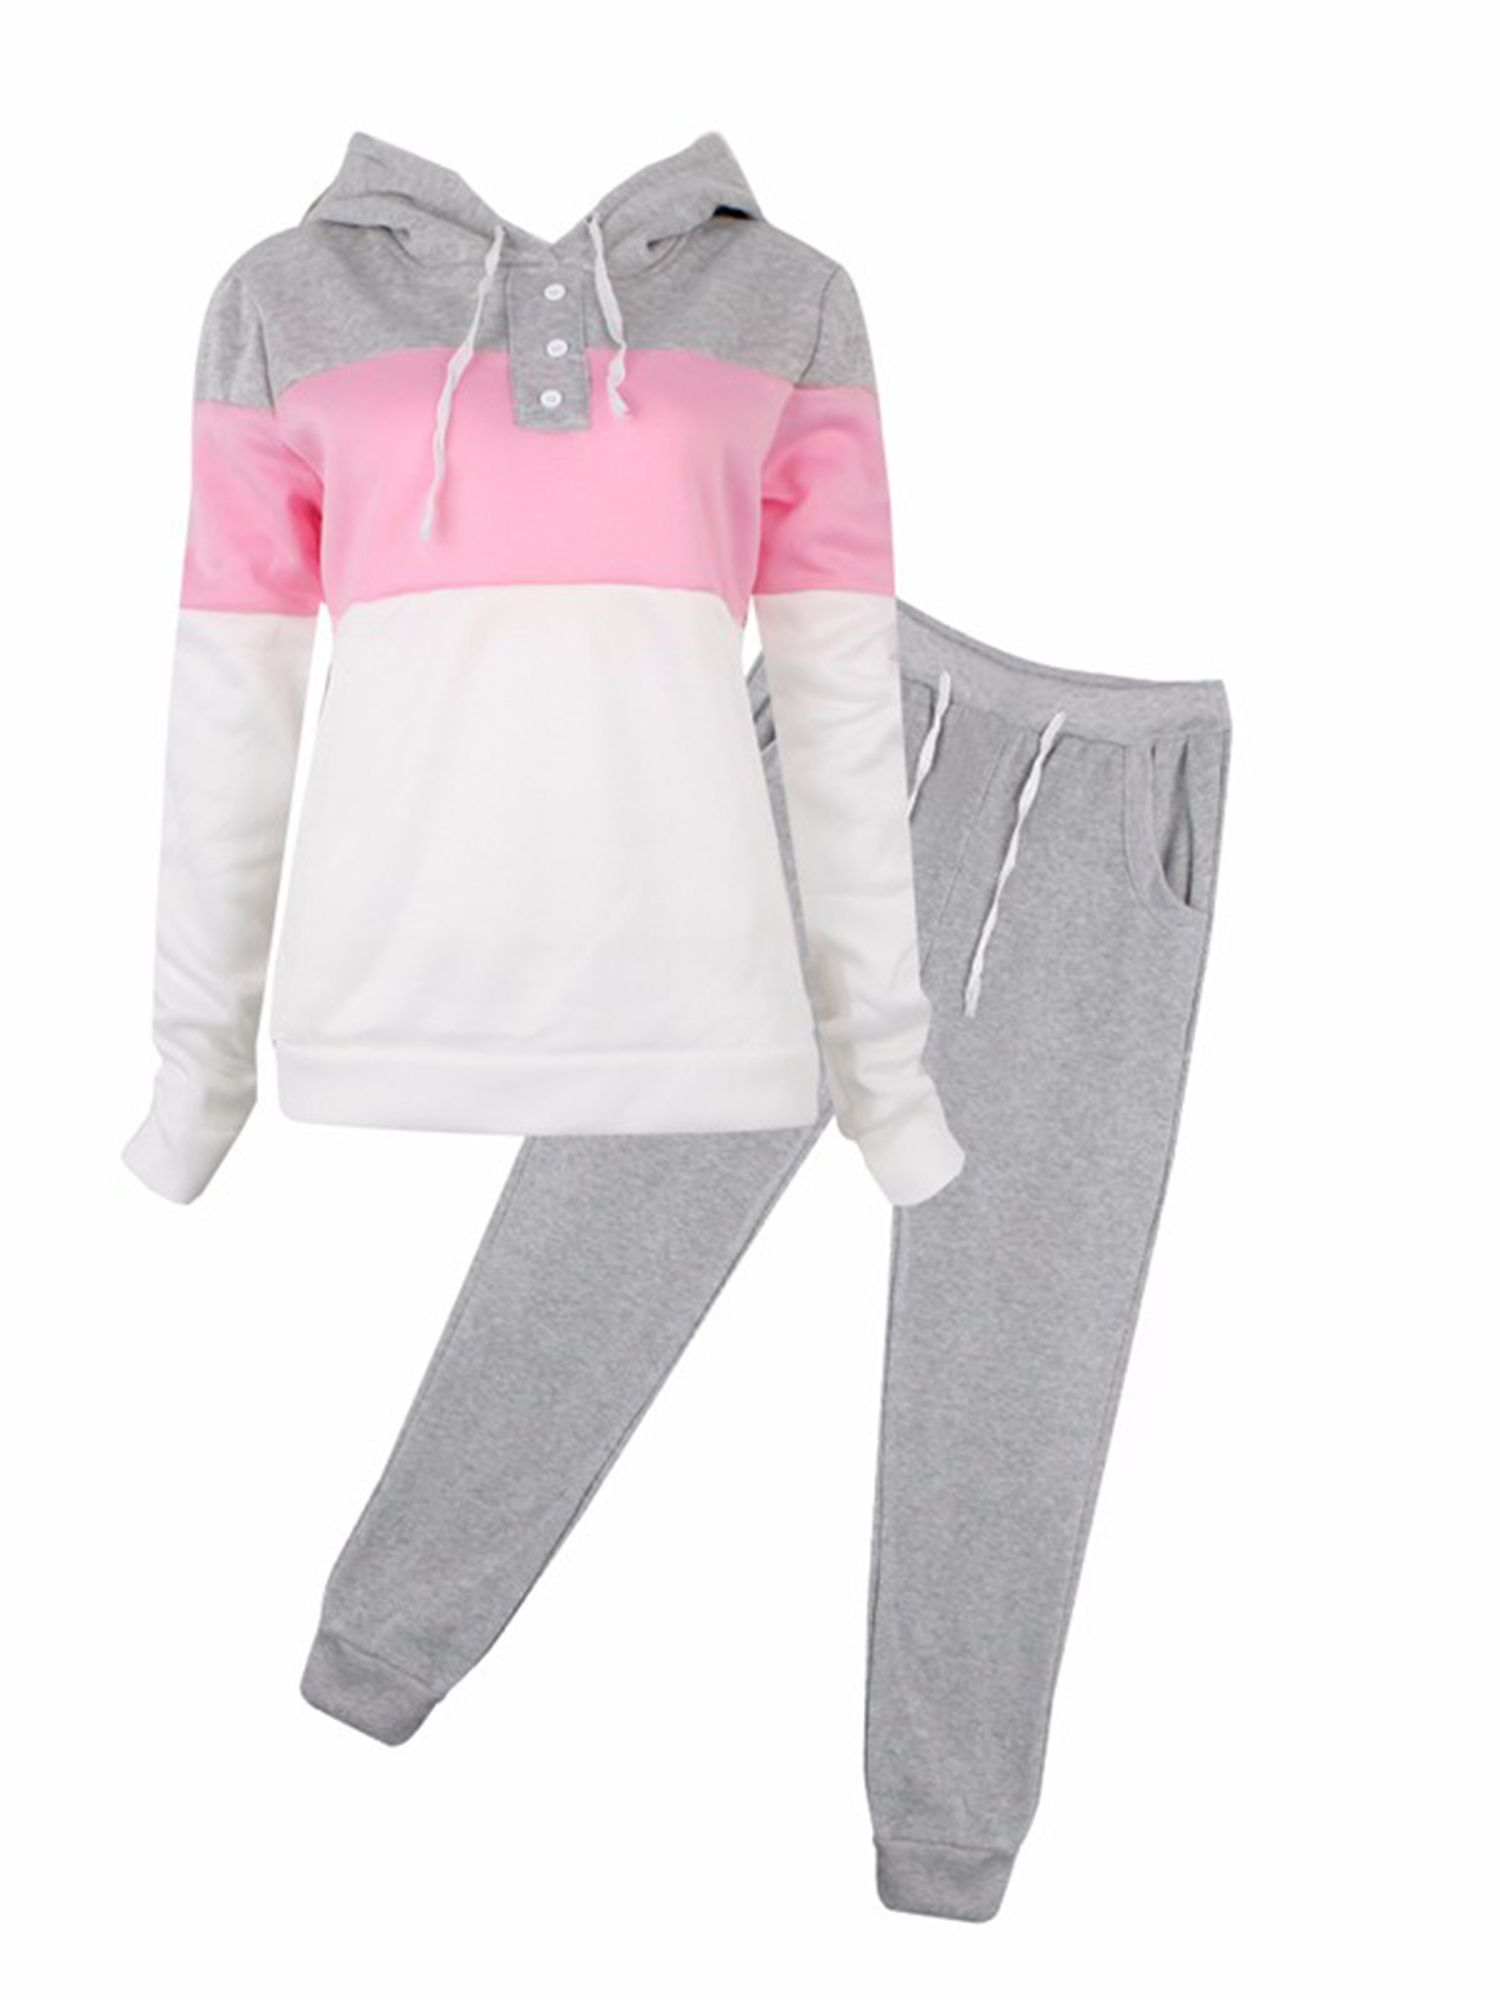 Topcobe Topcobe Blue Womens 2 Piece Outfits Long Sleeve Sweatshirt And Pants Sports Joggers Sweatsuits Set Tracksuits For Women Casual Pullover Hoodie Swe In 2020 Joggers Outfit Tracksuit Women Sweatshirts Hoodie